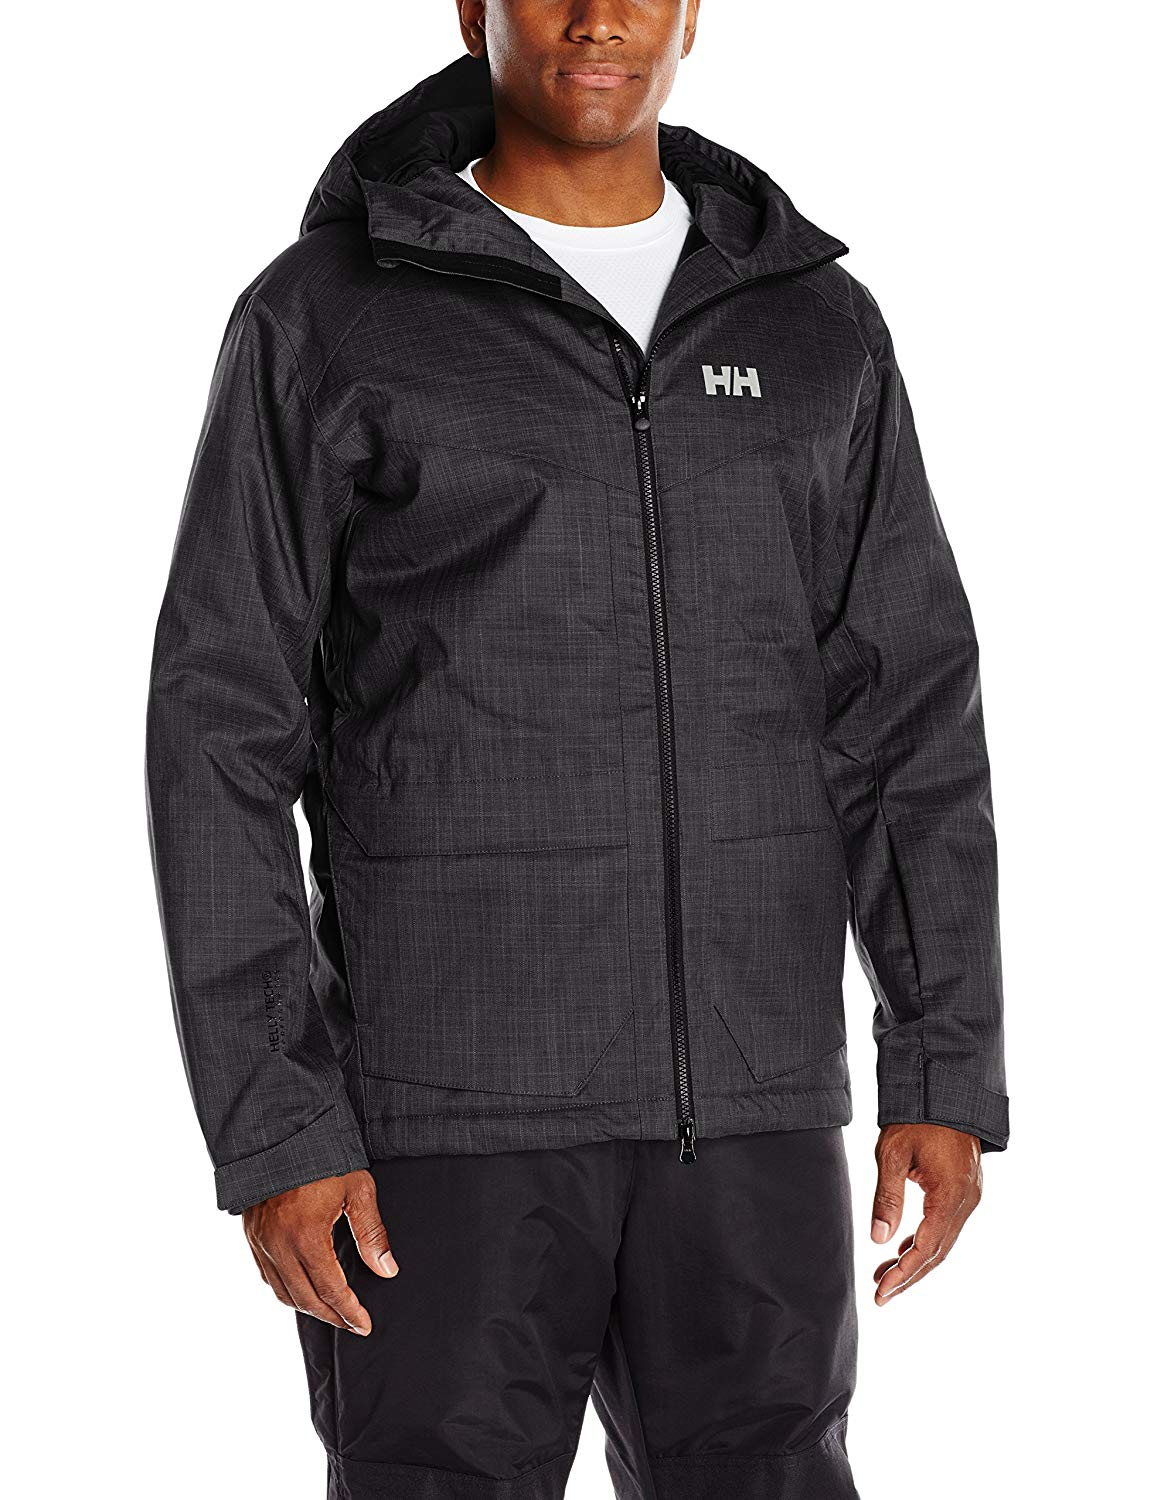 9fd1509cae Cheap Helly Hansen Ski Suit, find Helly Hansen Ski Suit deals on ...